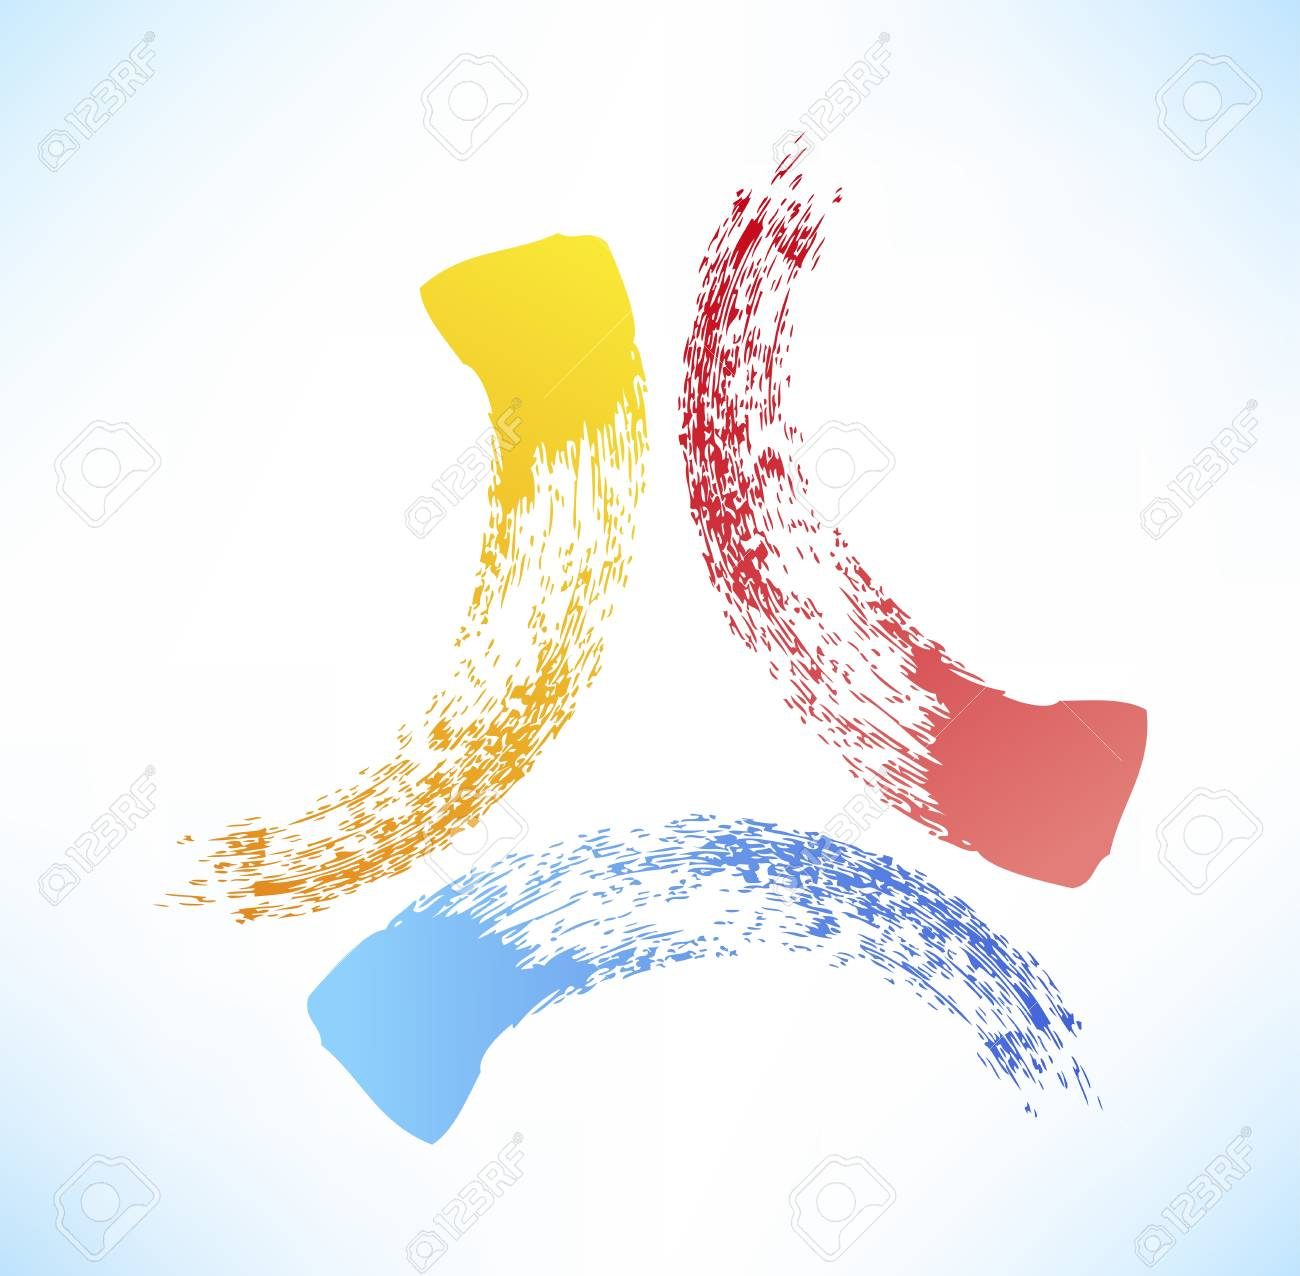 Brushstroke. Abstract symbol of the triad. Stock Vector - 15567806